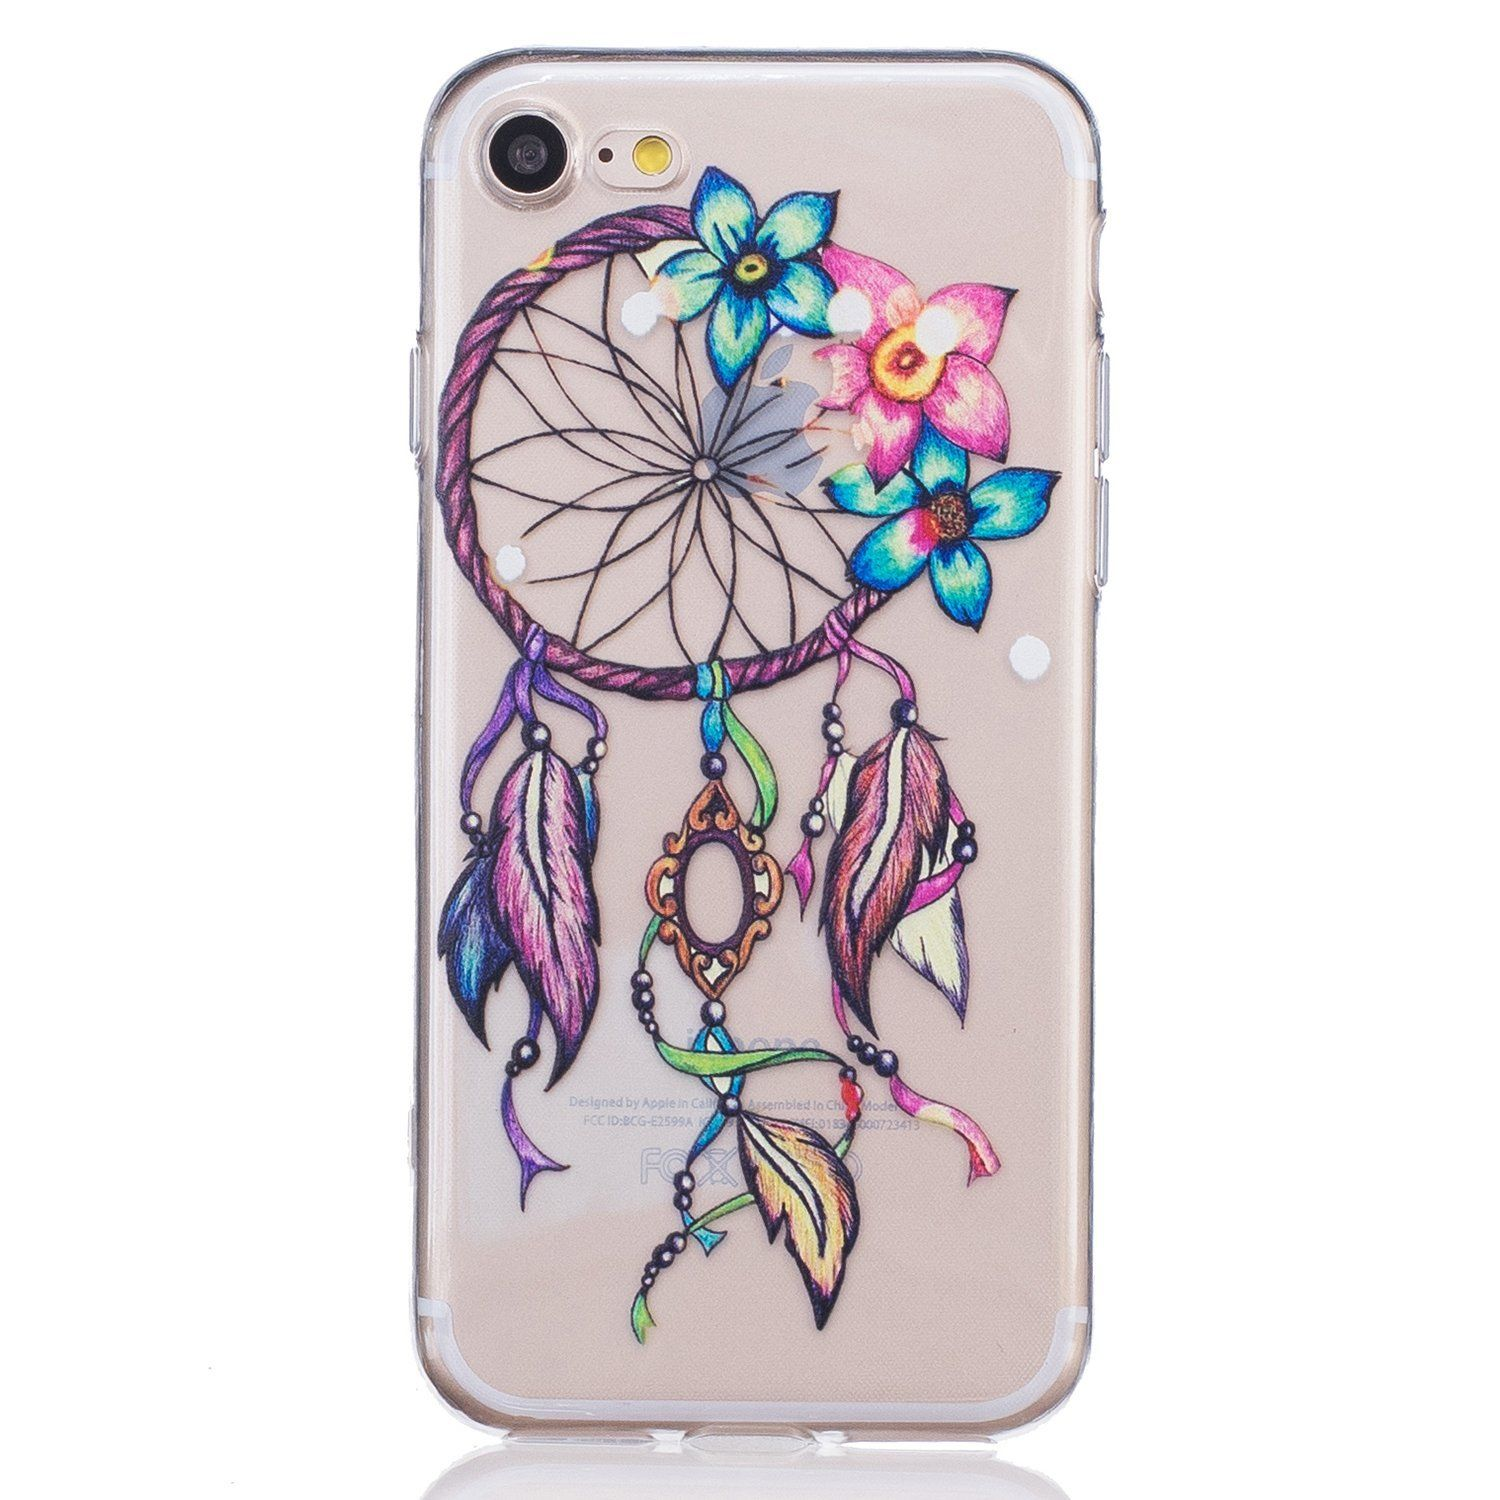 Urberry 4 7 INCH Iphone 7 Case Dream catcher Design Soft Silicon Flexible Case Cover